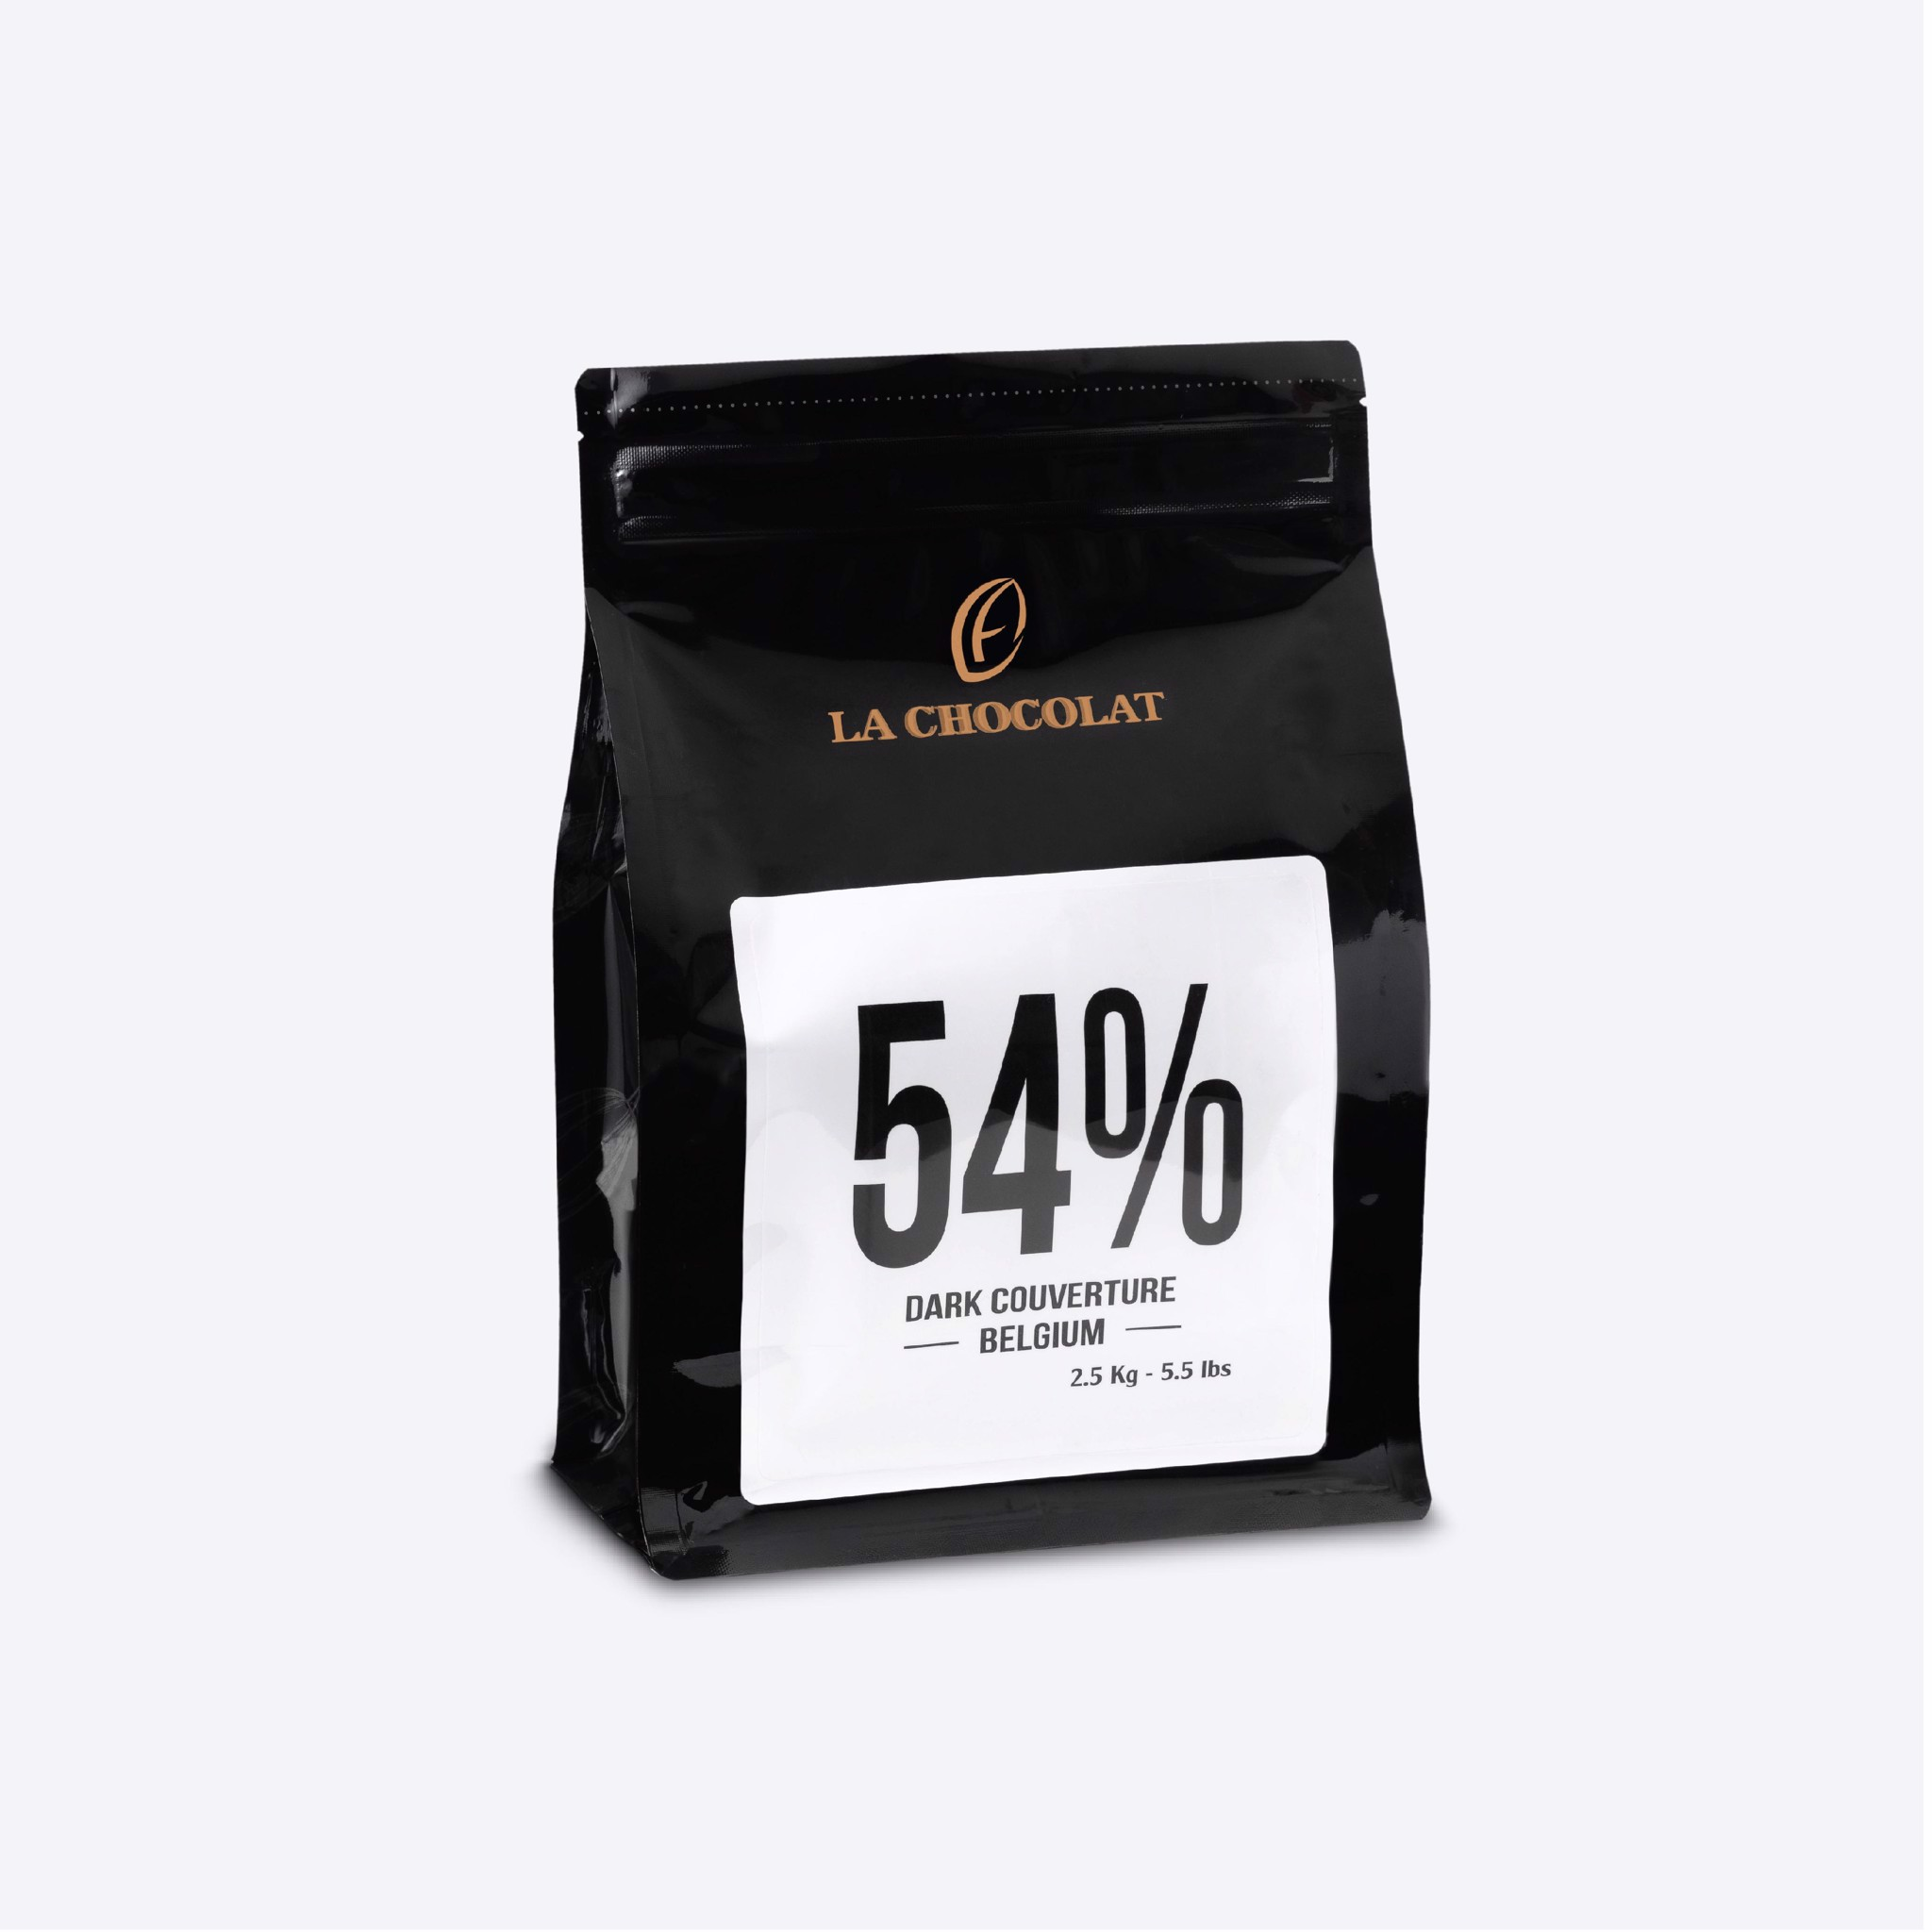 Dark Couverture Chocolate 54% 2.5kg